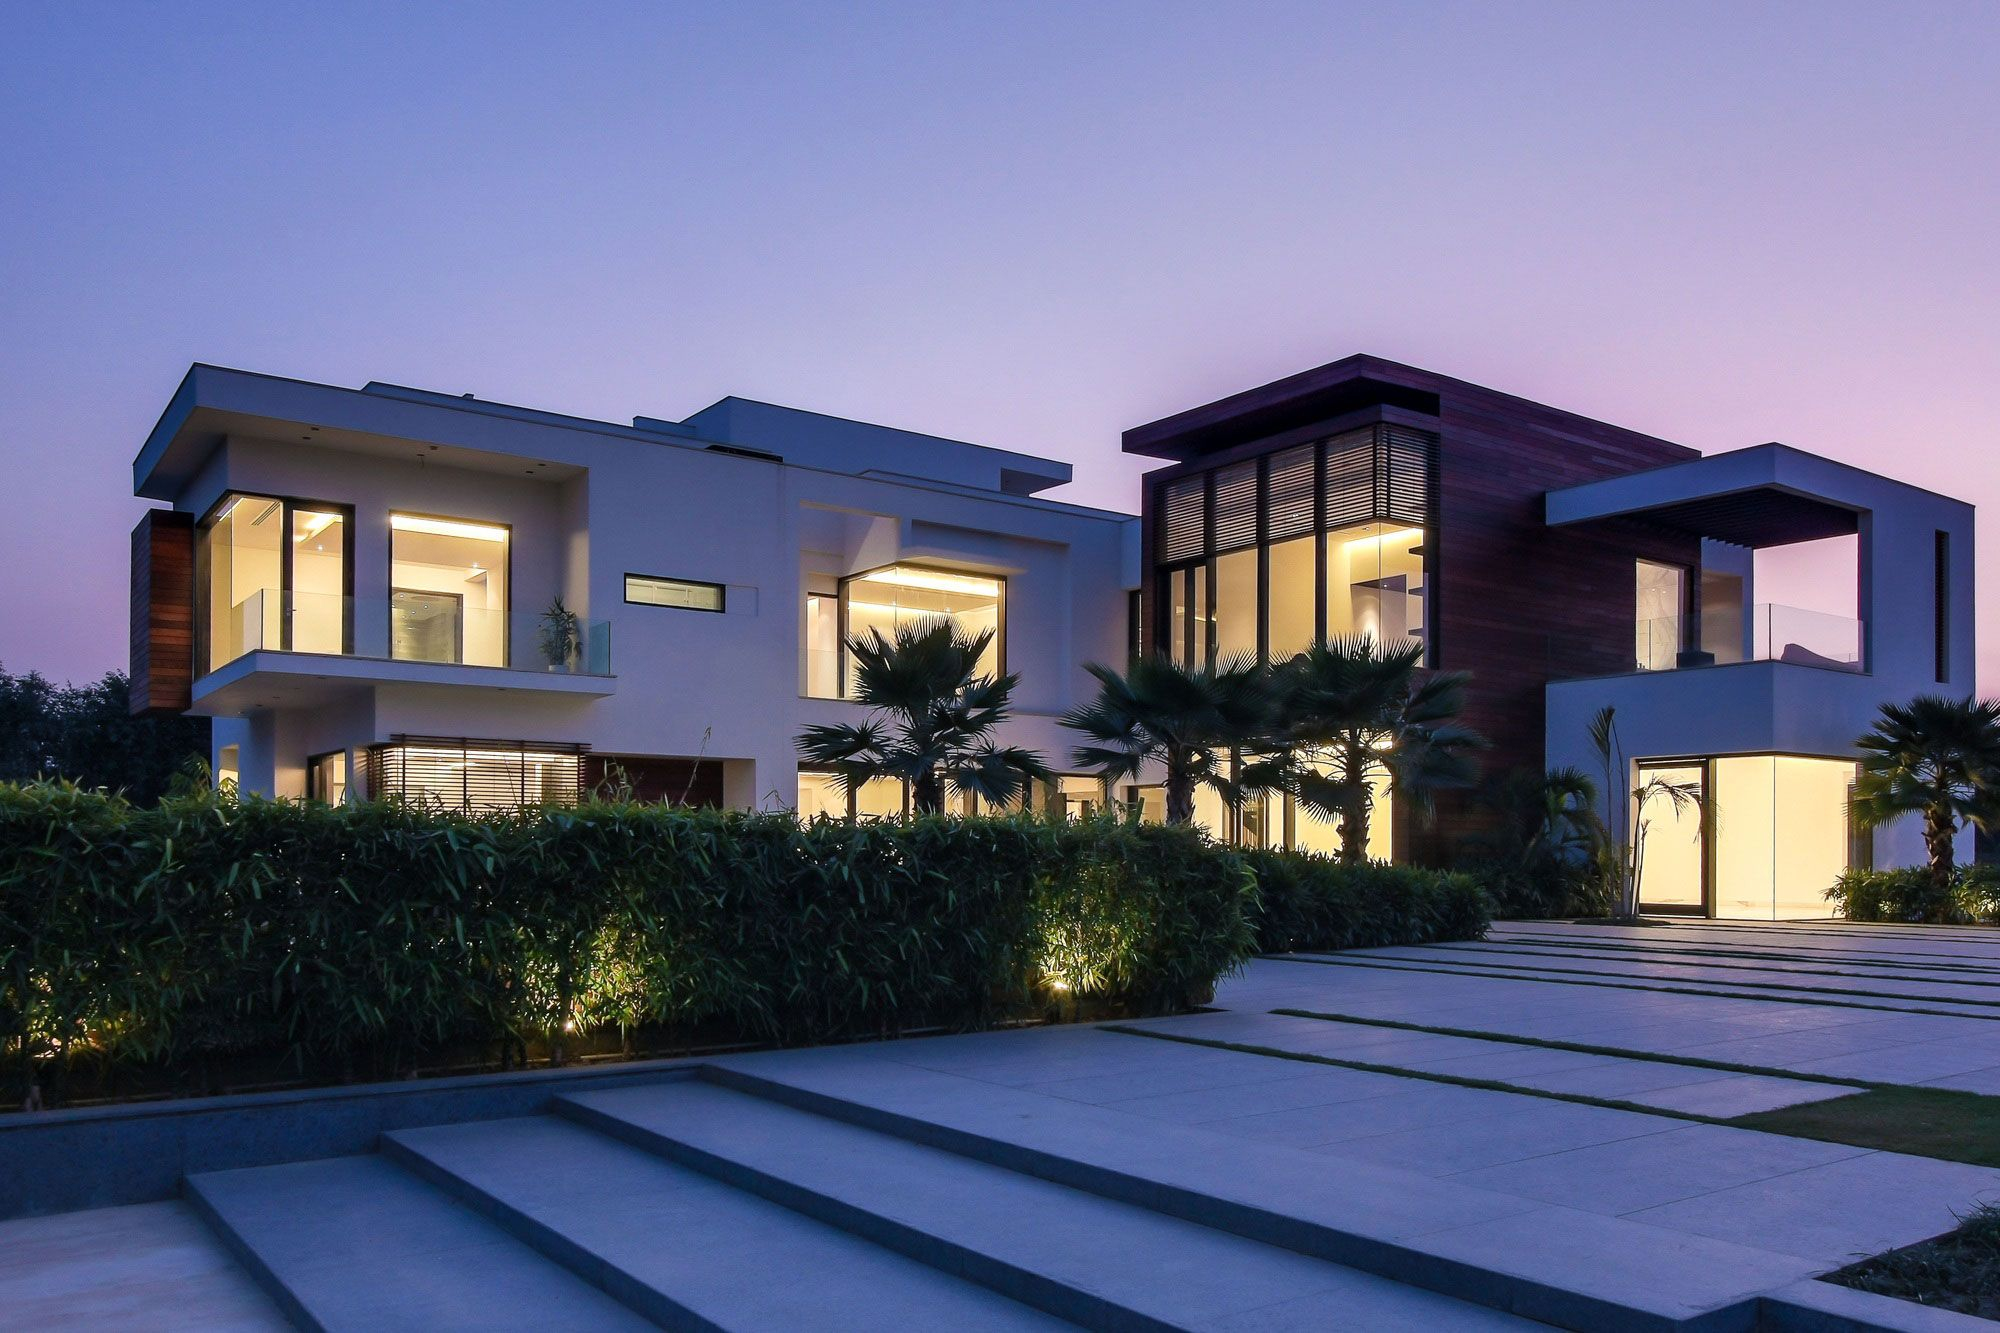 Luxury house photos full hd pictures for House photo gallery